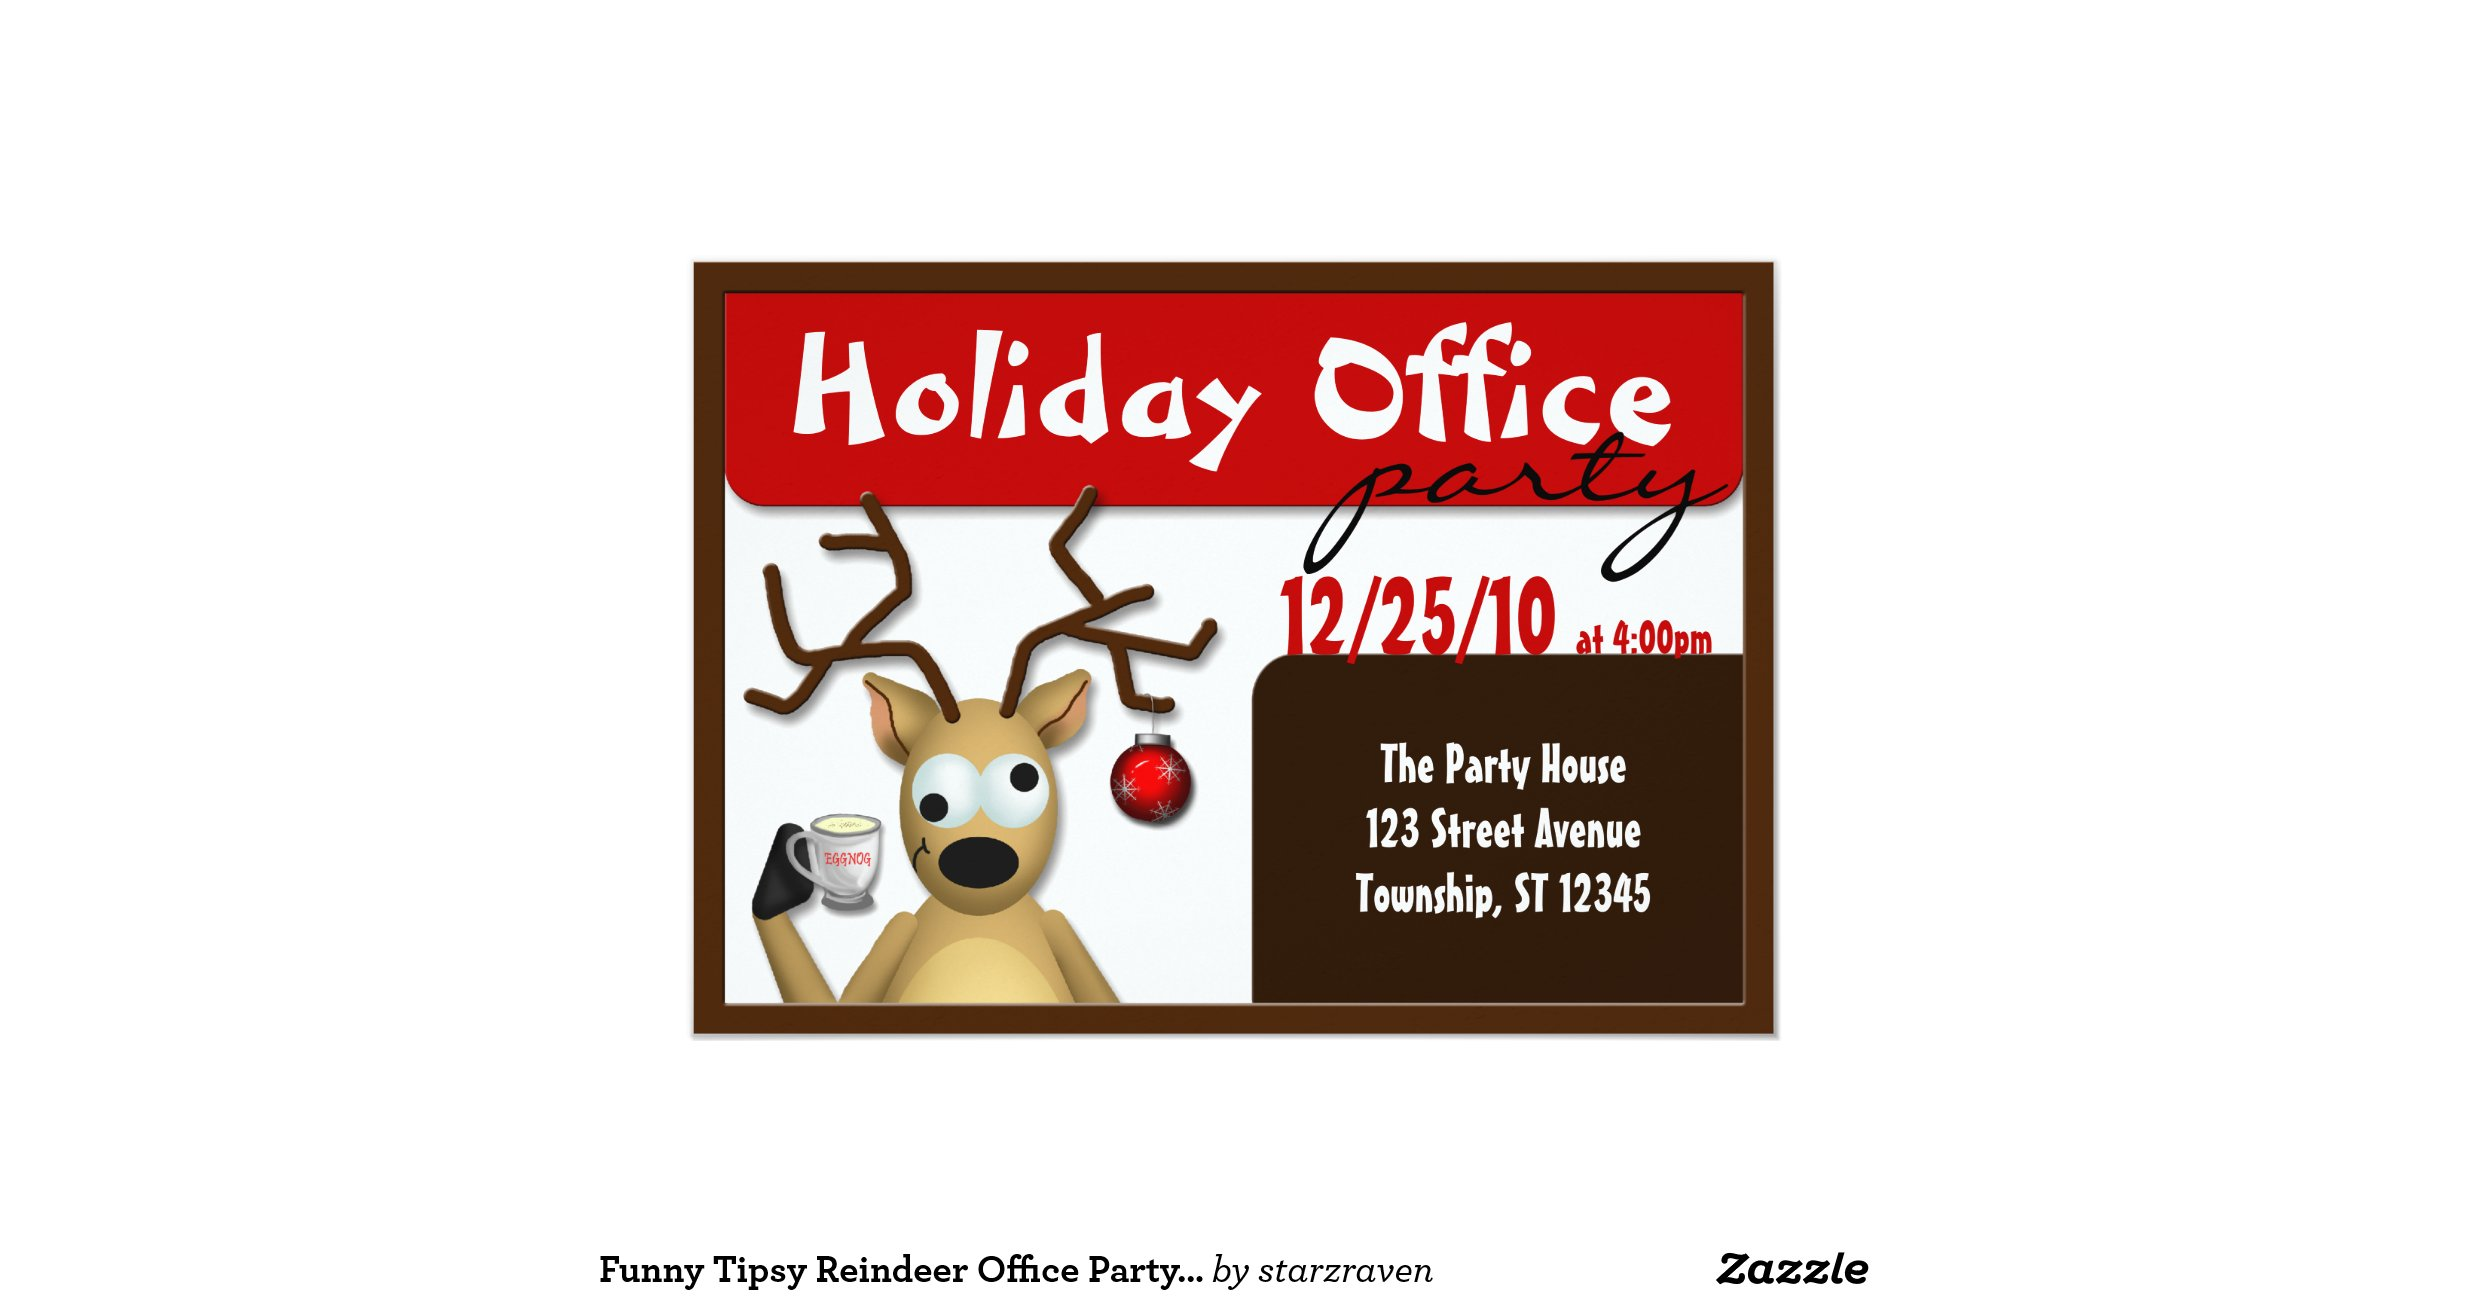 rlv.zcache.com/funny_tipsy_reindeer_office_party_i...